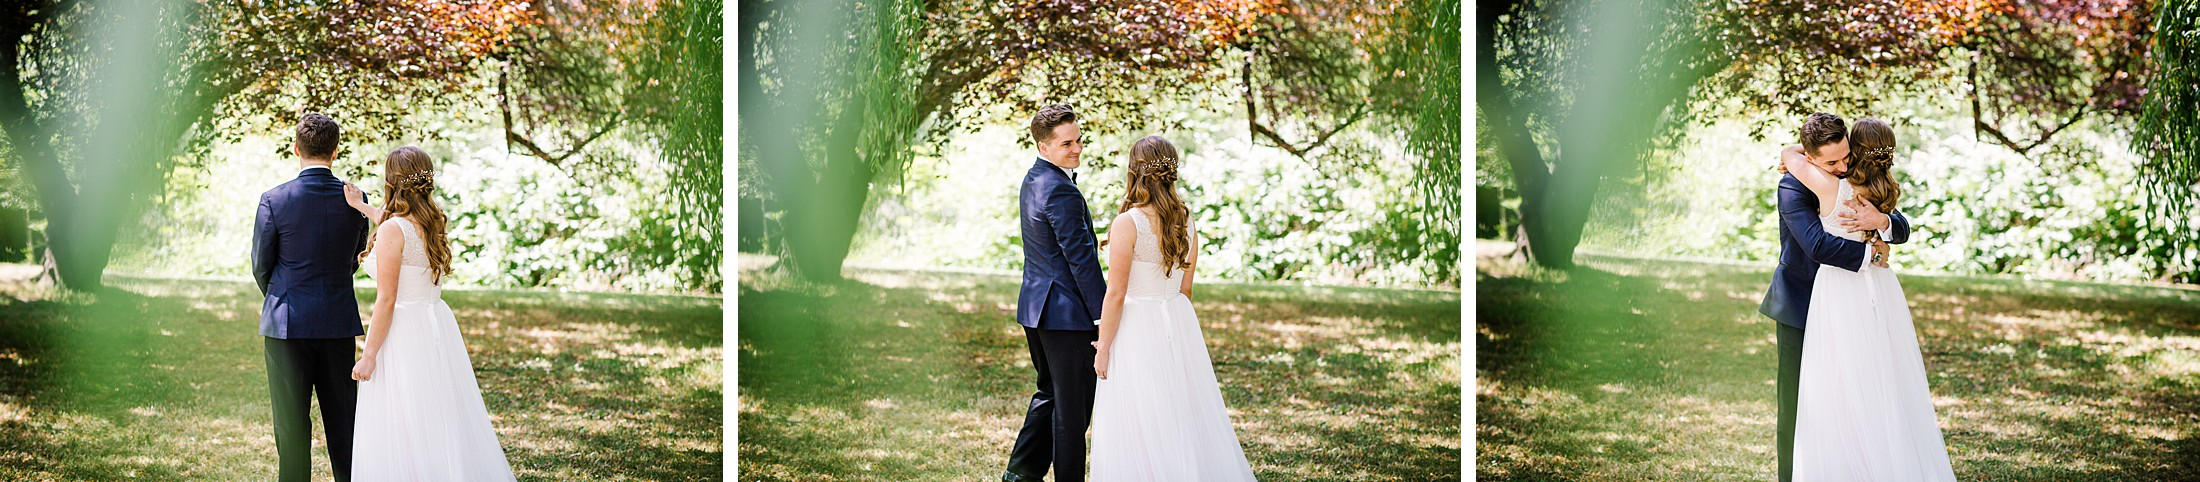 June21.IanEmilie32528_Note Photography Documentary Photographer Wedding Photos Vancouver B.C. Best 2019 2020 Vancouver Island Brock House Restaurant Wedding Jericho Beach Kitsilano.jpg